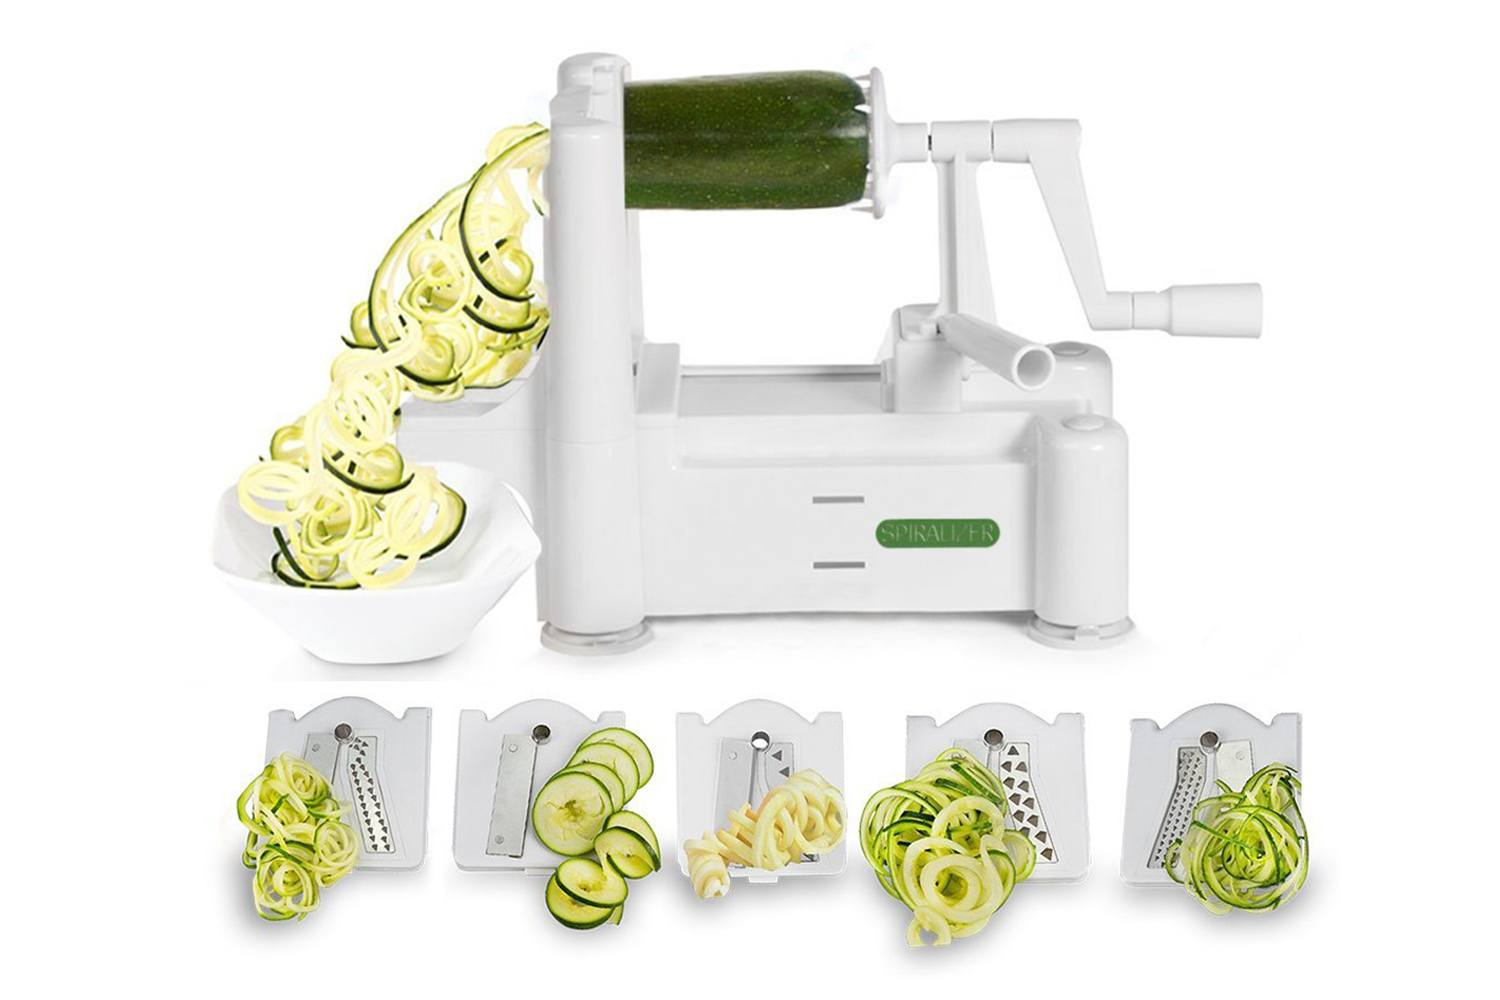 Spiralizer 5-Blade Vegetable Sprial Slicer